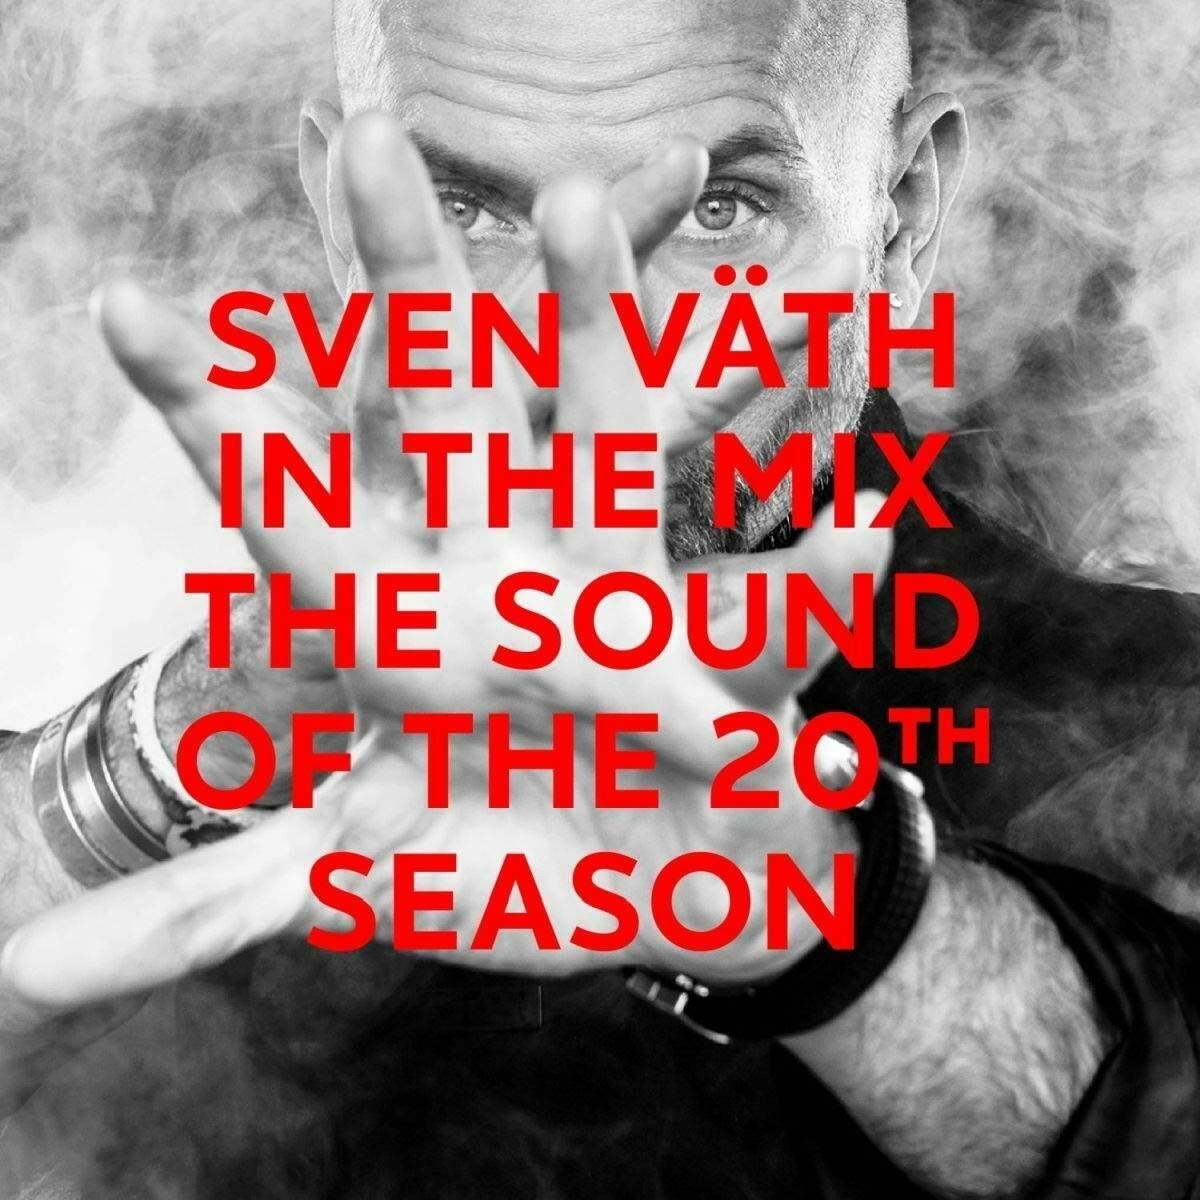 VA - Sven Vaeth In The Mix  The Sound Of The 20th Season (2019) [FLAC] Download